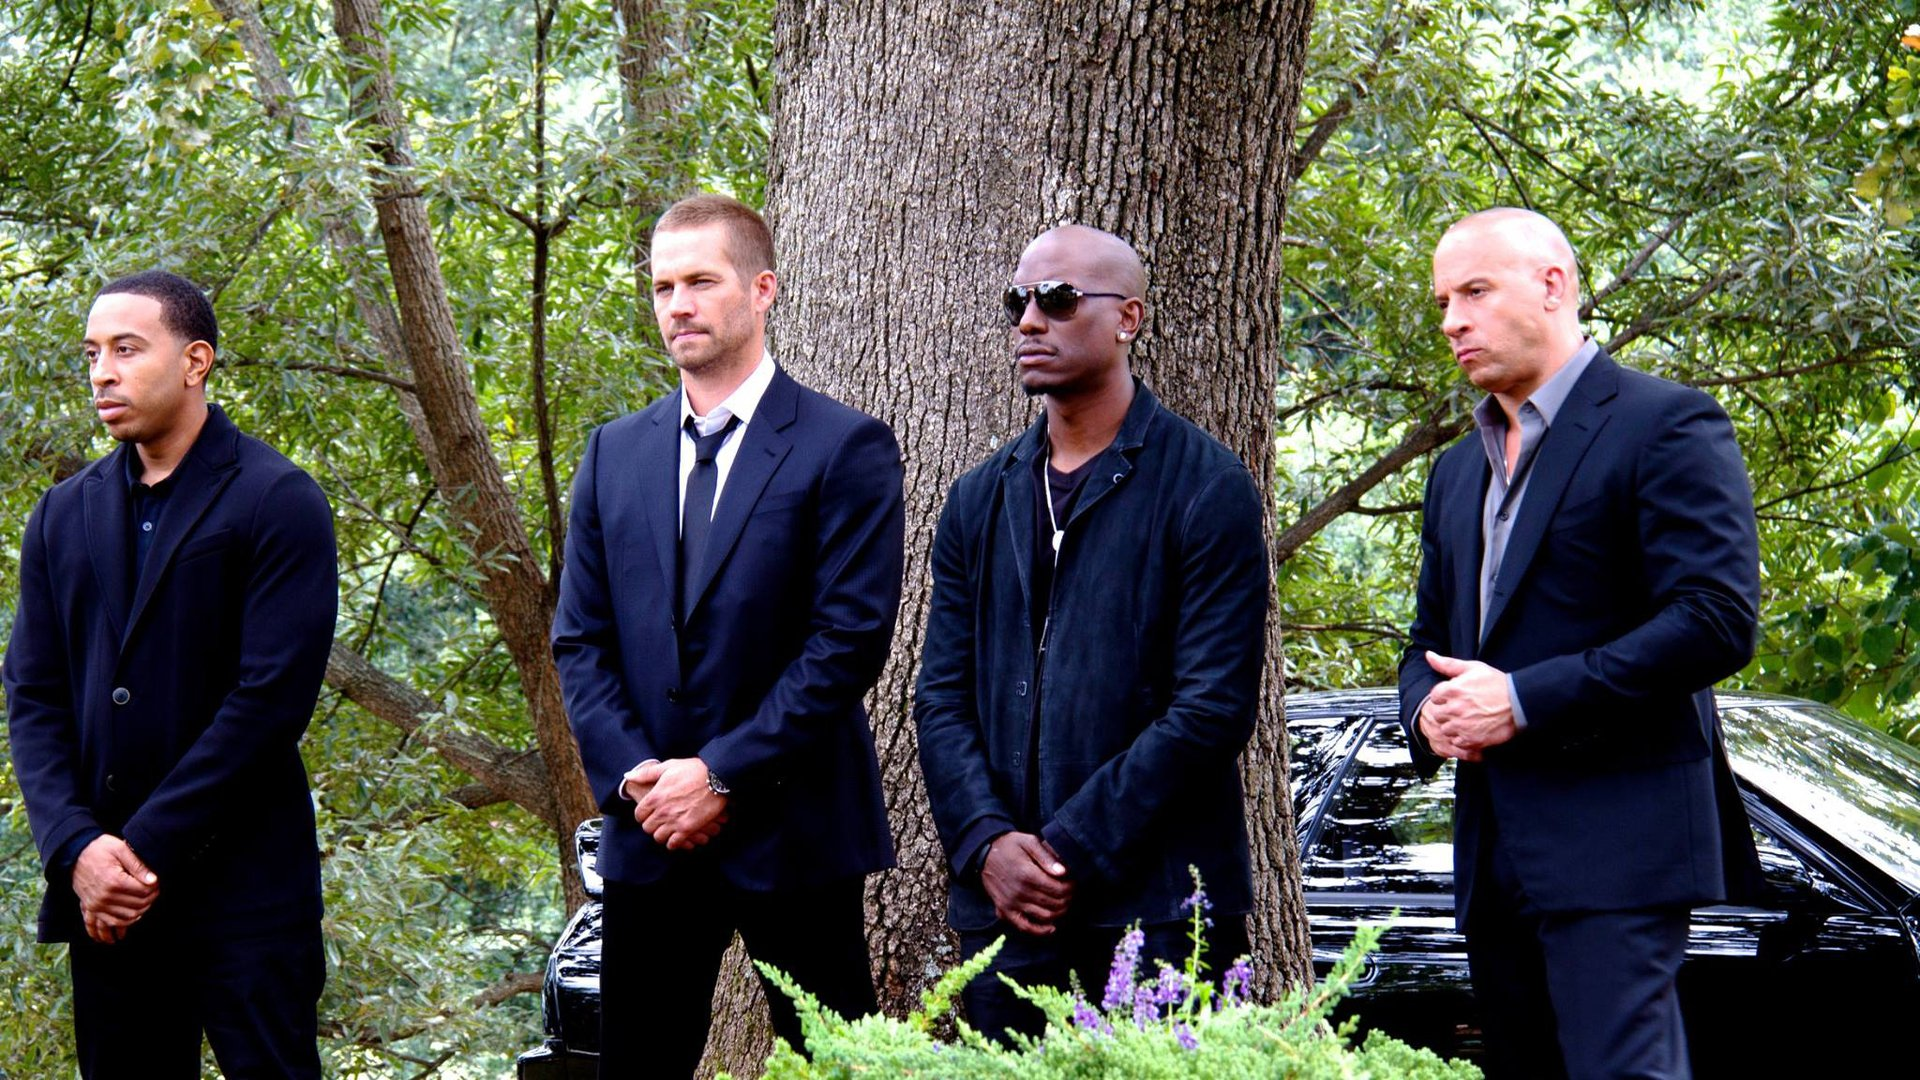 Movie - Furious 7  Dominic Toretto Vin Diesel Brian O'Conner Paul Walker Roman Pearce Tyrese Gibson Ludacris Tej (Fast & Furious) Wallpaper